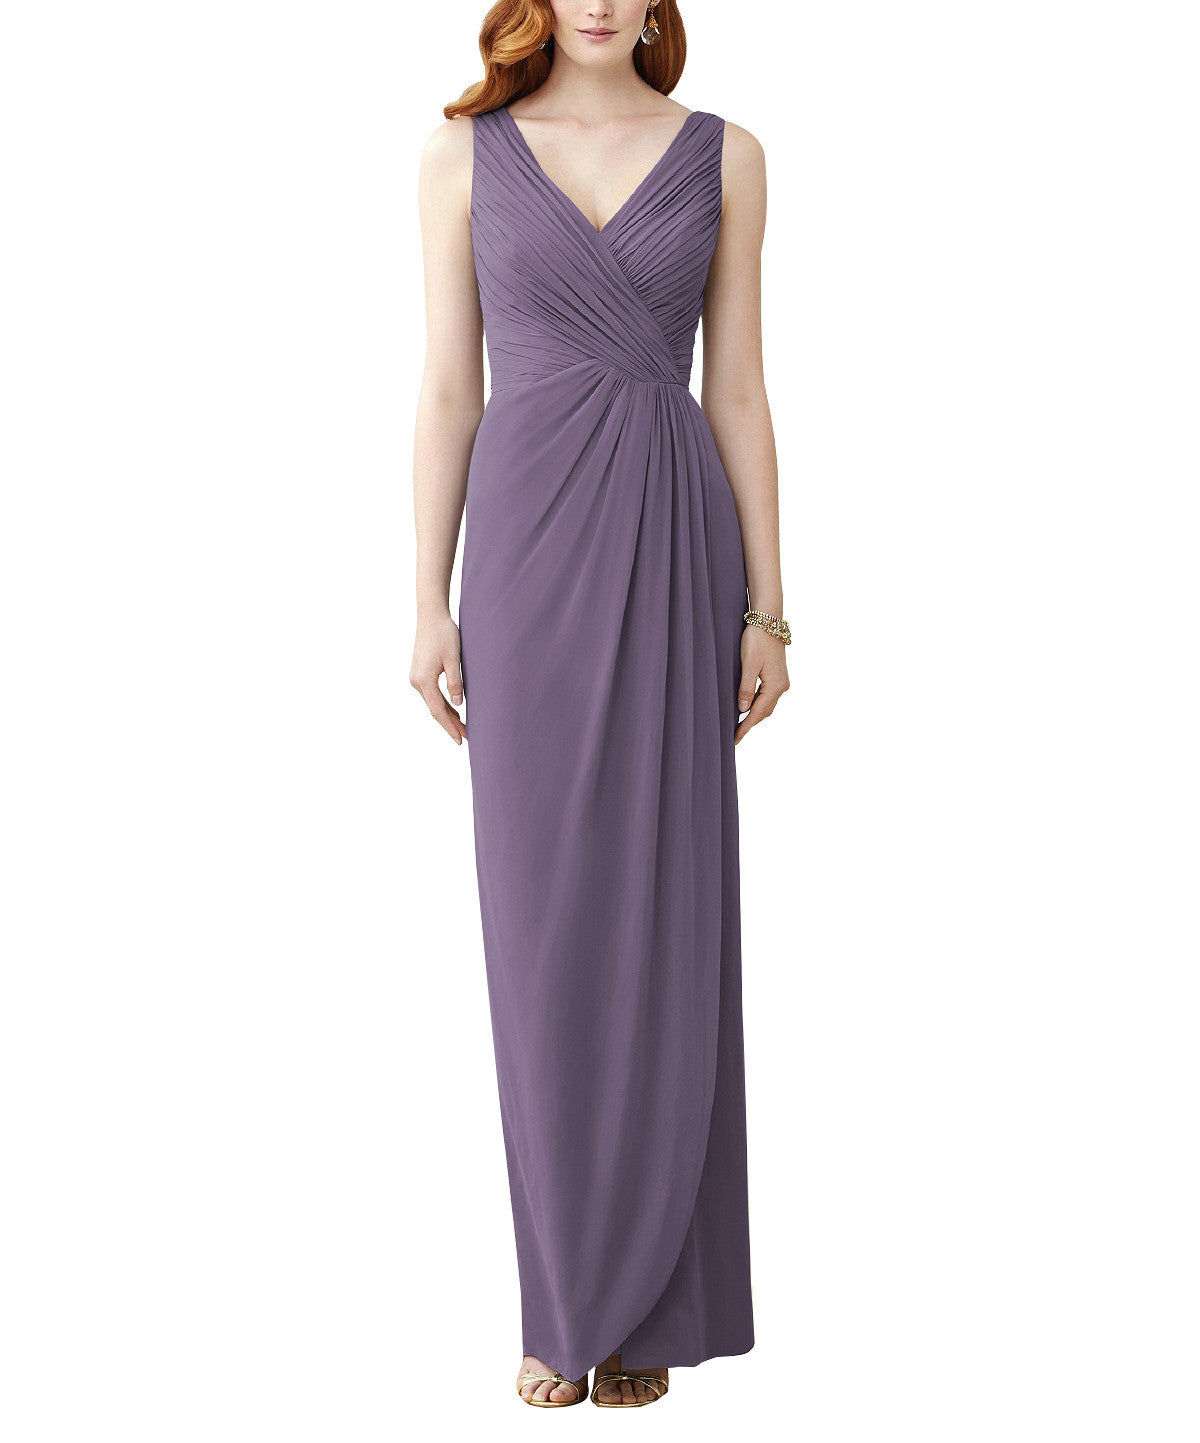 Dessy collection style 2958 bridesmaid dress brideside dessy collection style 2958 ombrellifo Gallery